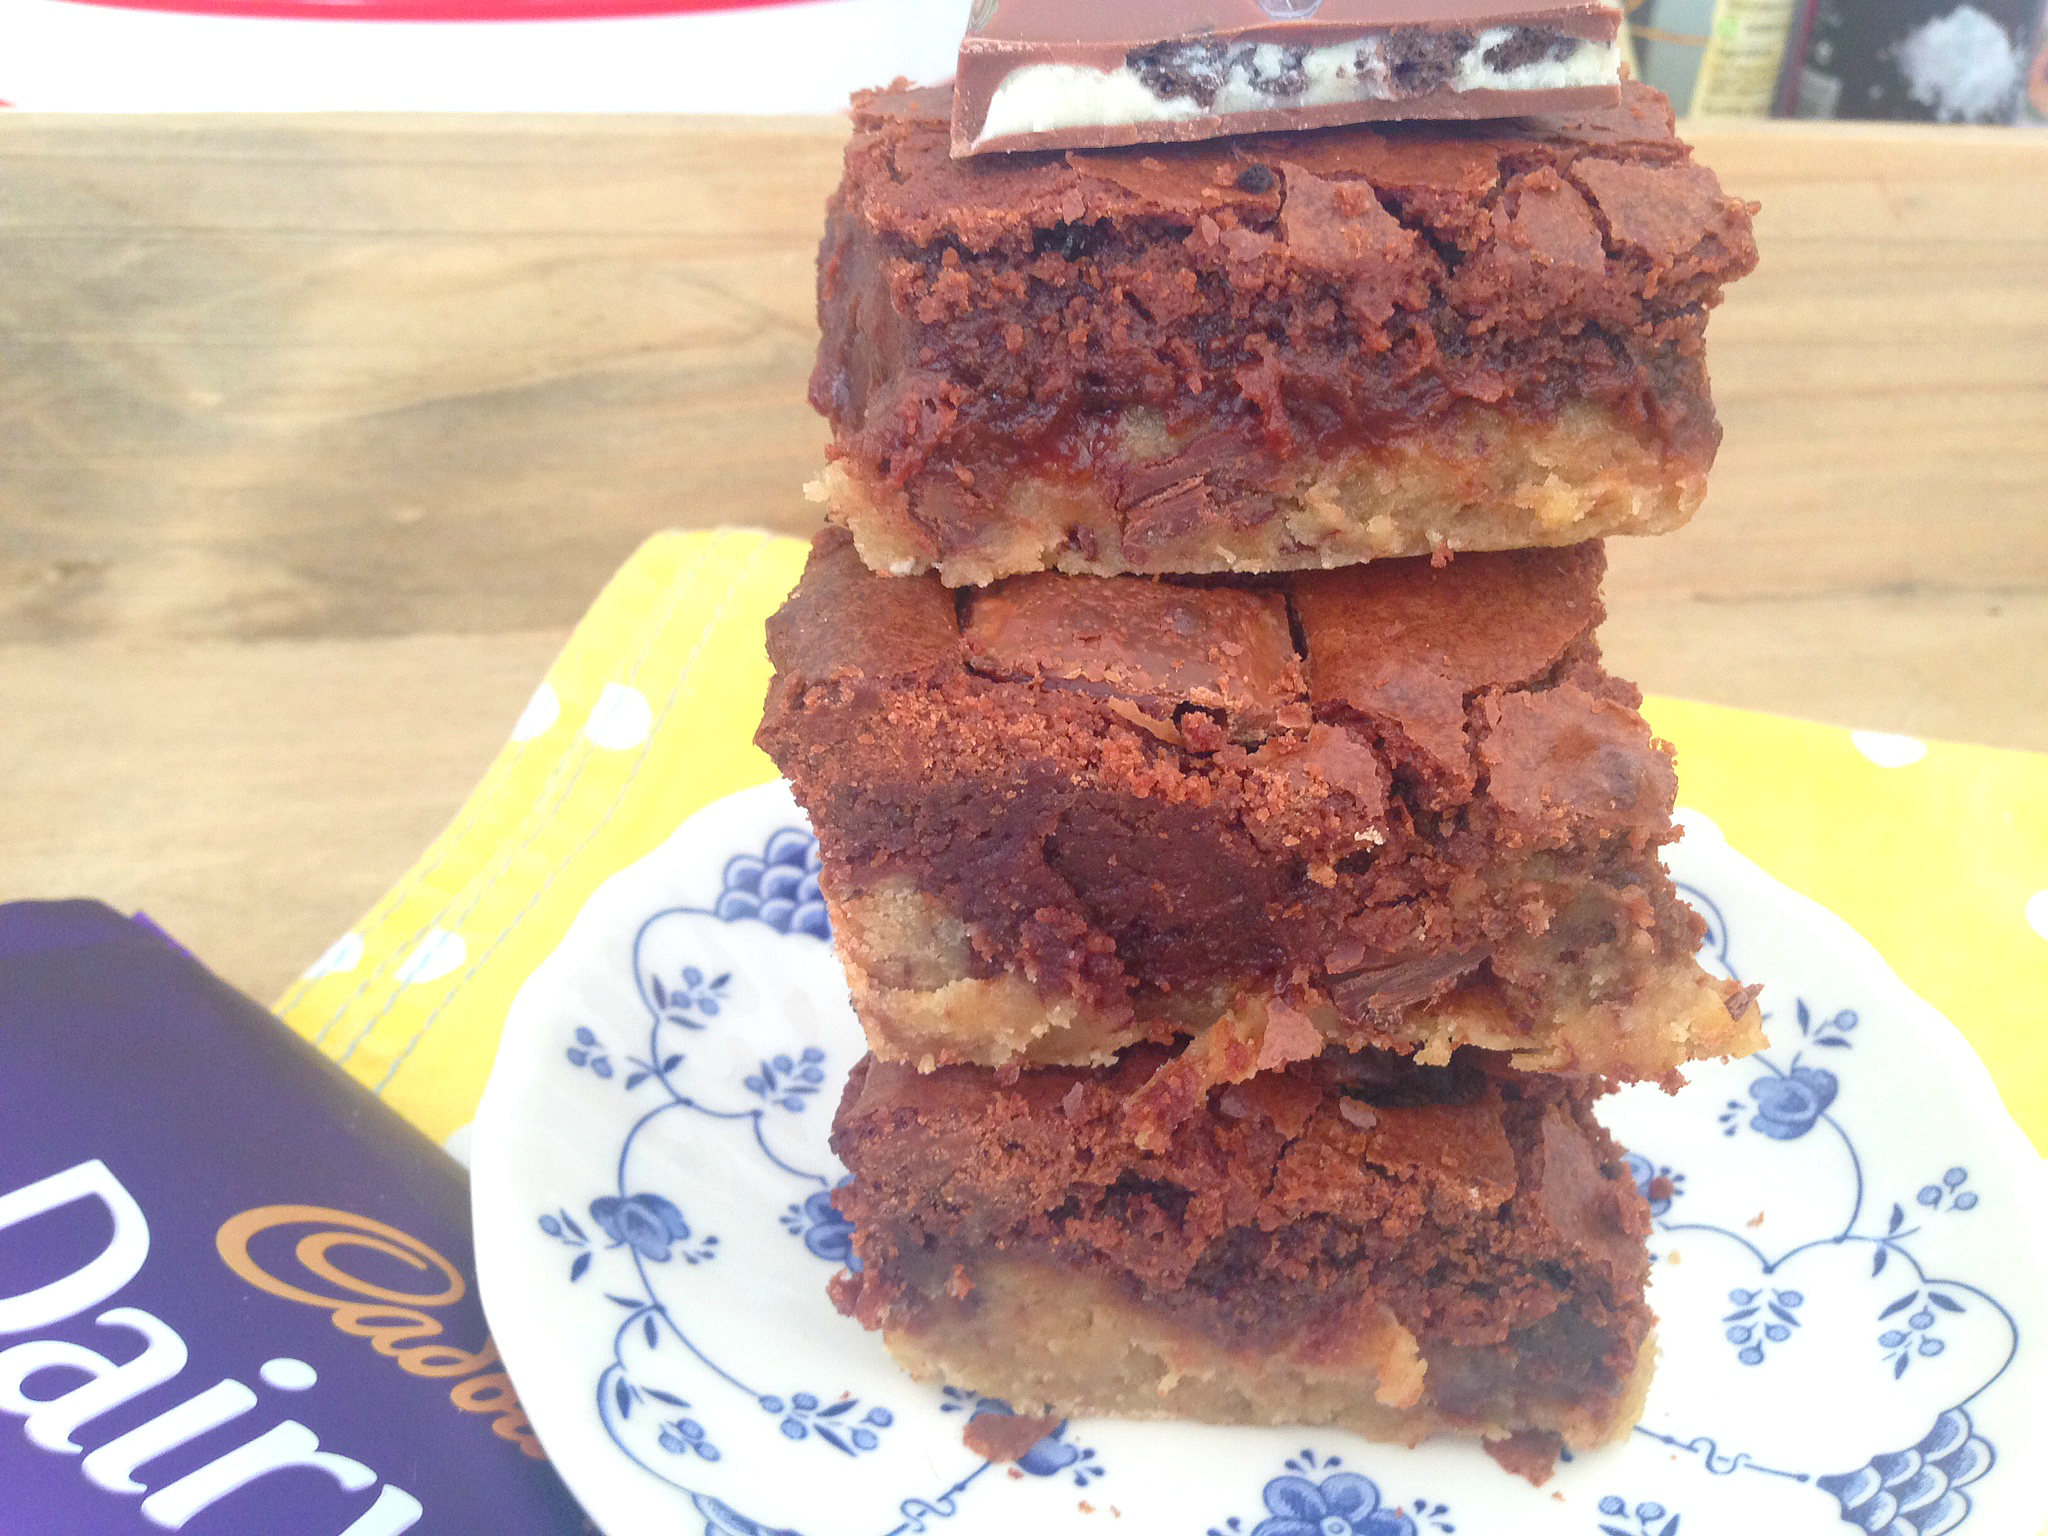 These are THE best brownie recipes I've ever tried and eaten in my life! You HAVE to pin this!